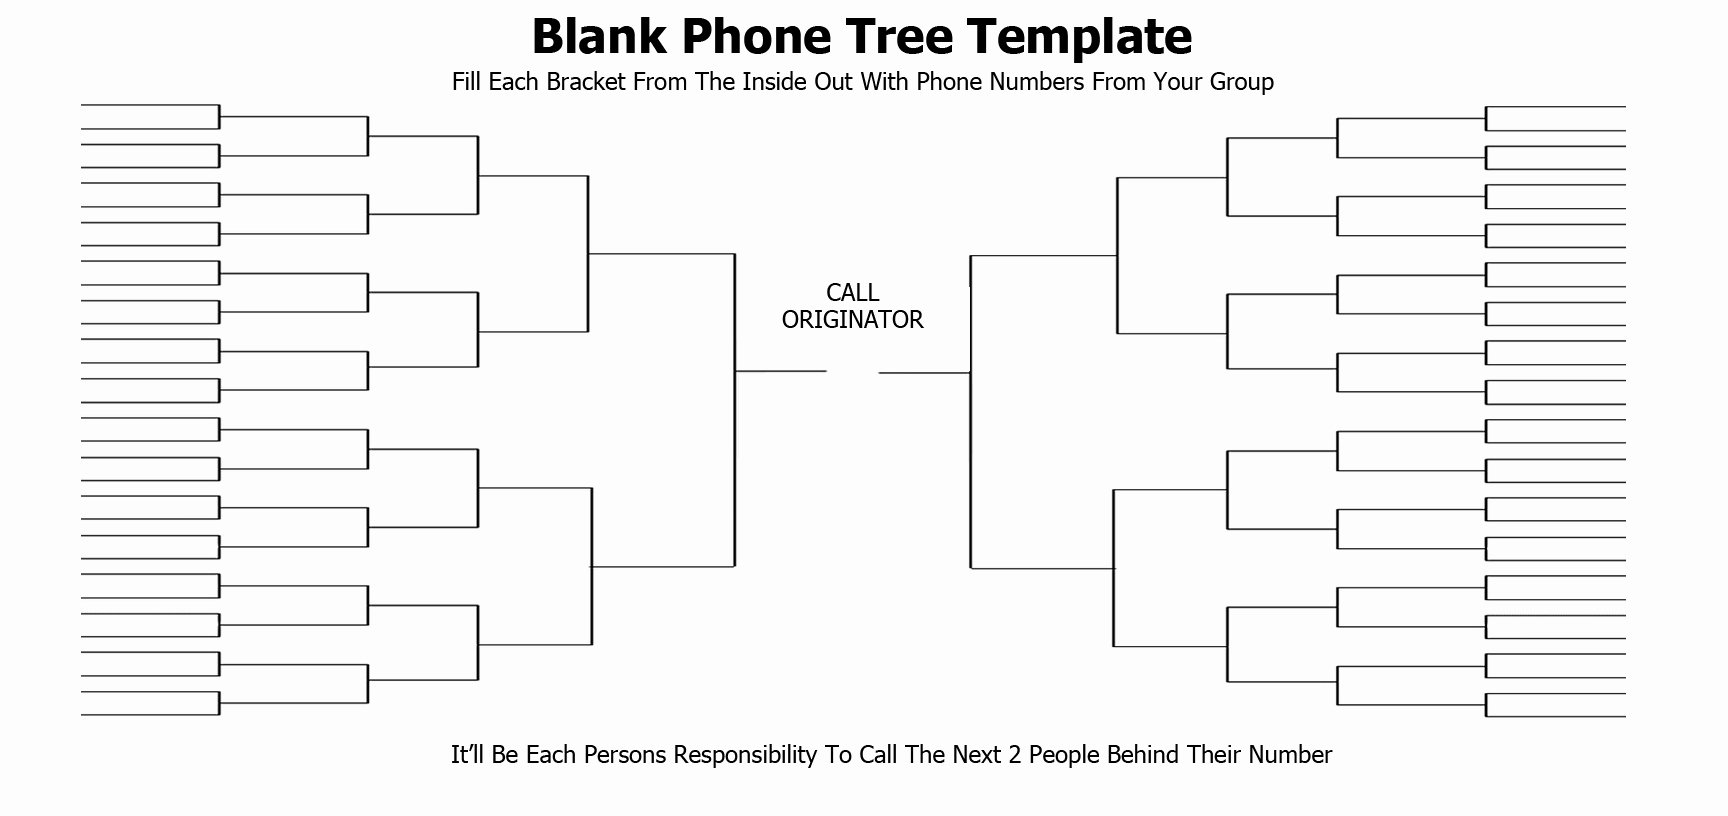 Emergency Phone Tree Template Inspirational 5 Free Phone Tree Templates Word Excel Pdf formats